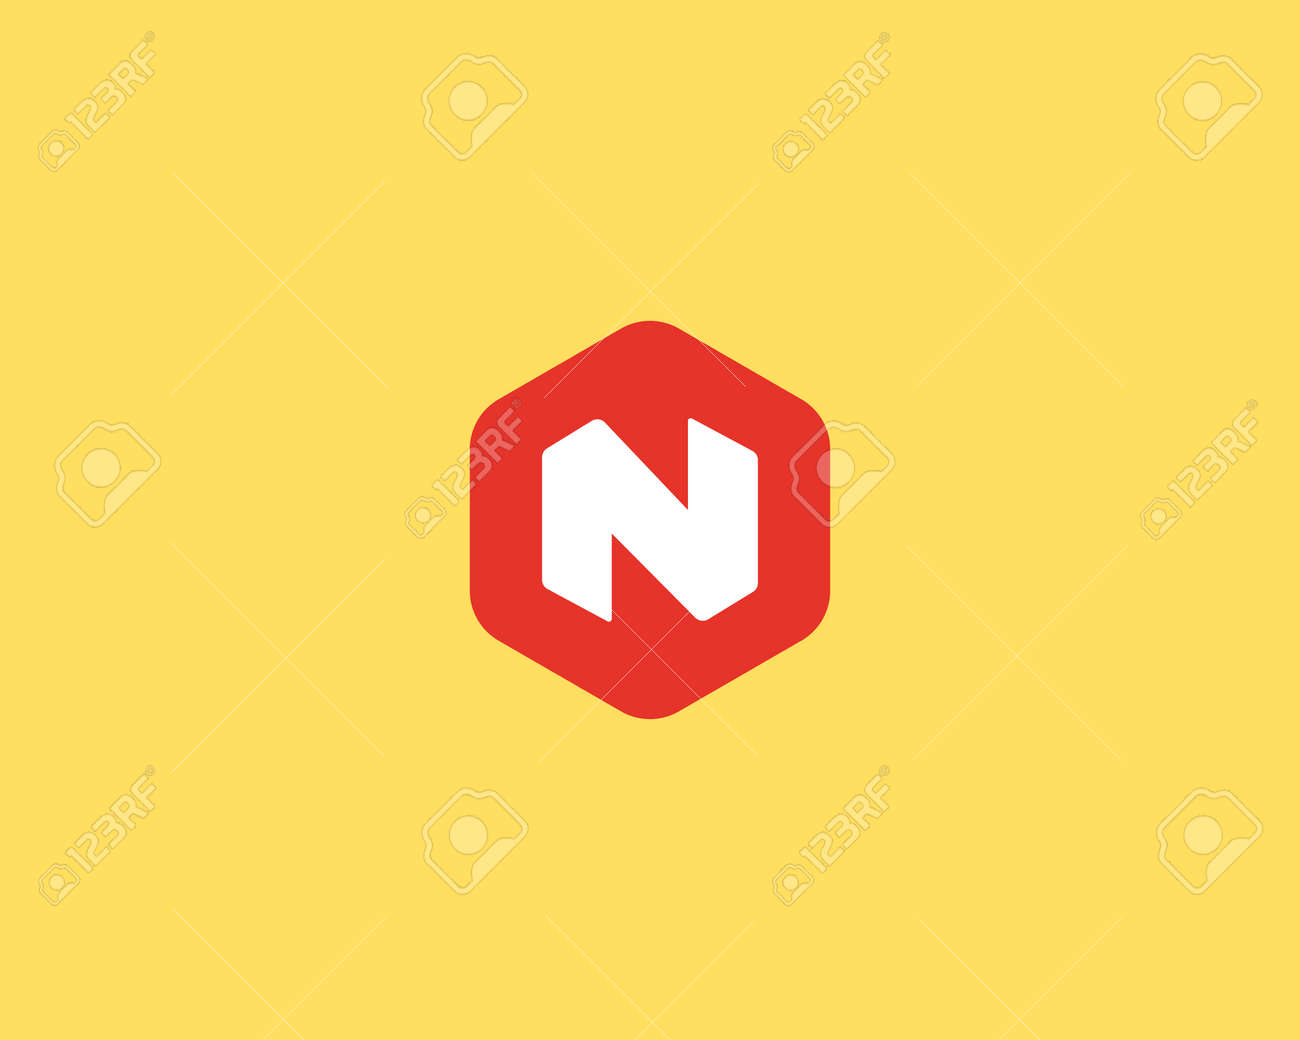 abstract letter n logo design template colorful creative hexagon